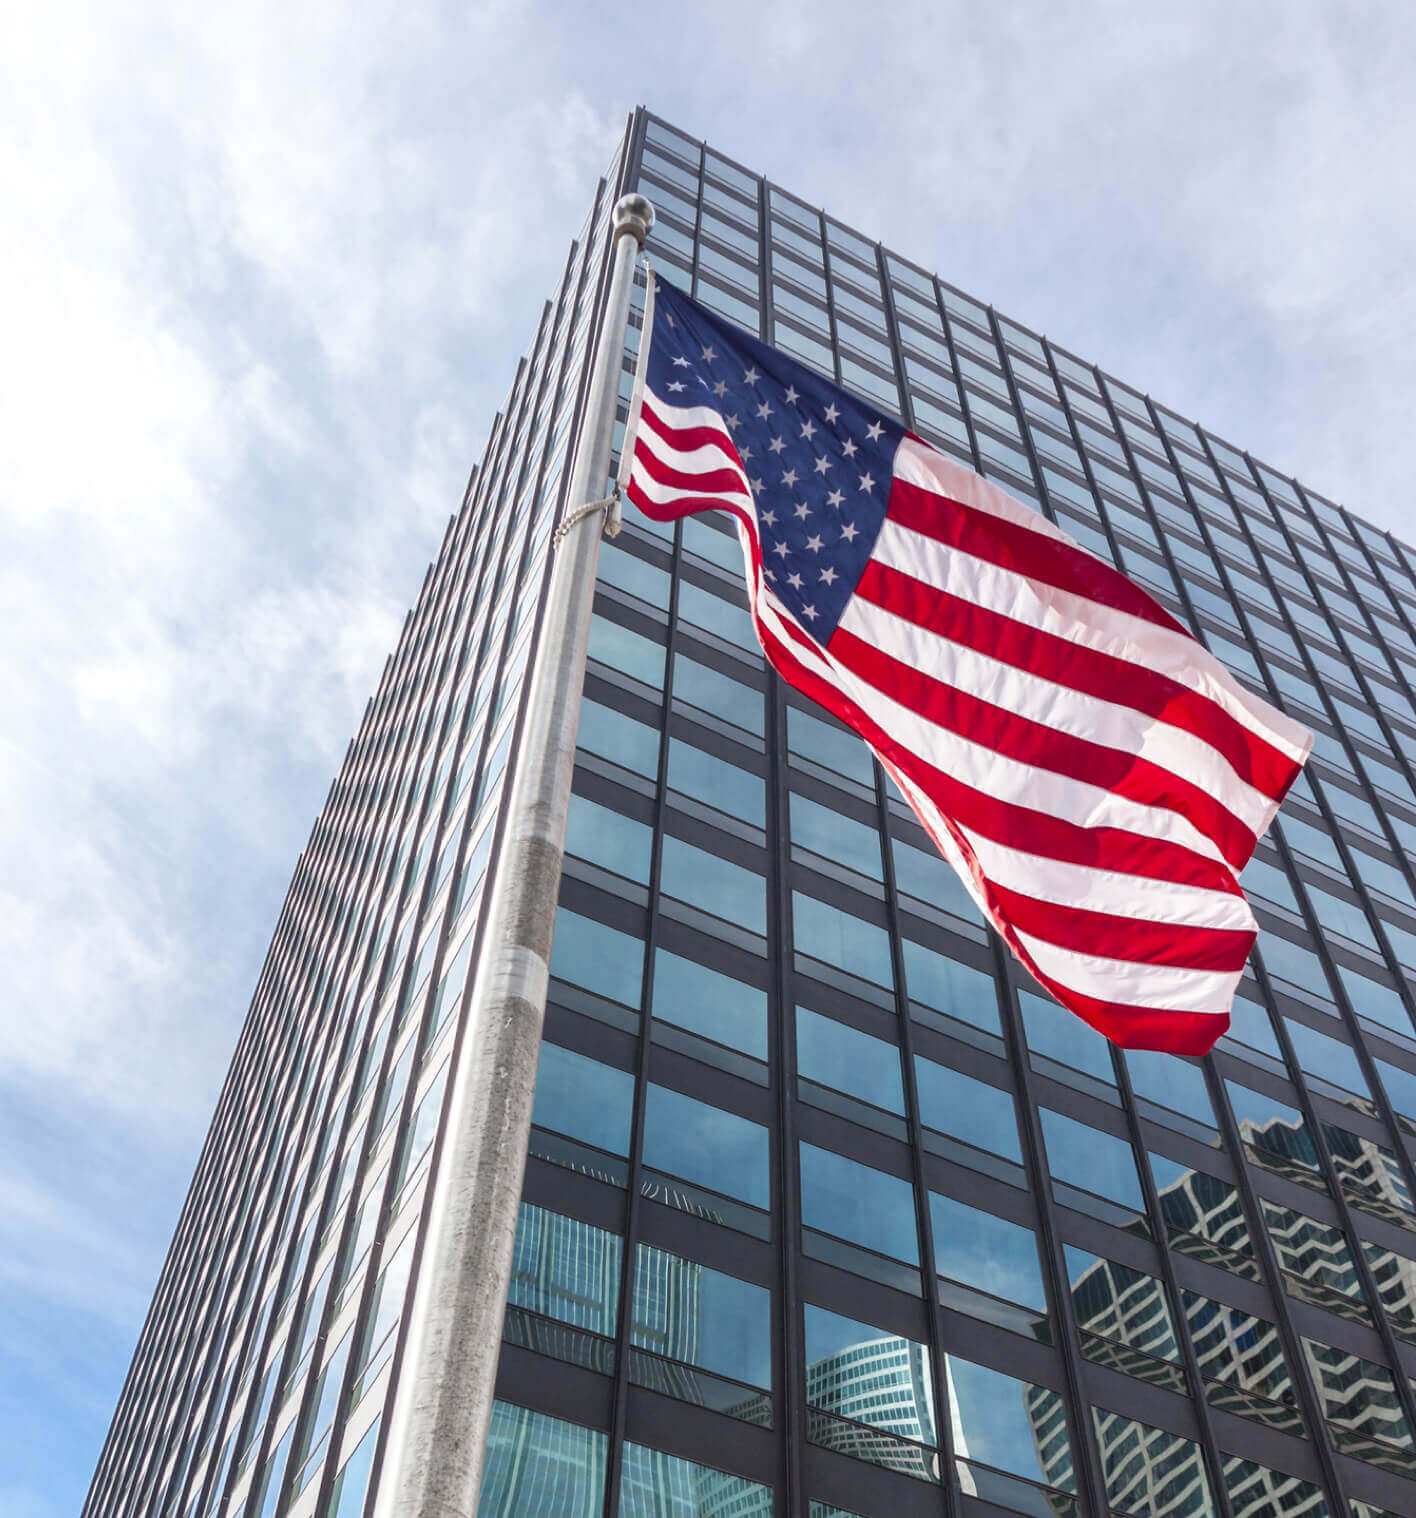 An upward view of an american flag flying in front of a modern office building and a bright sky.